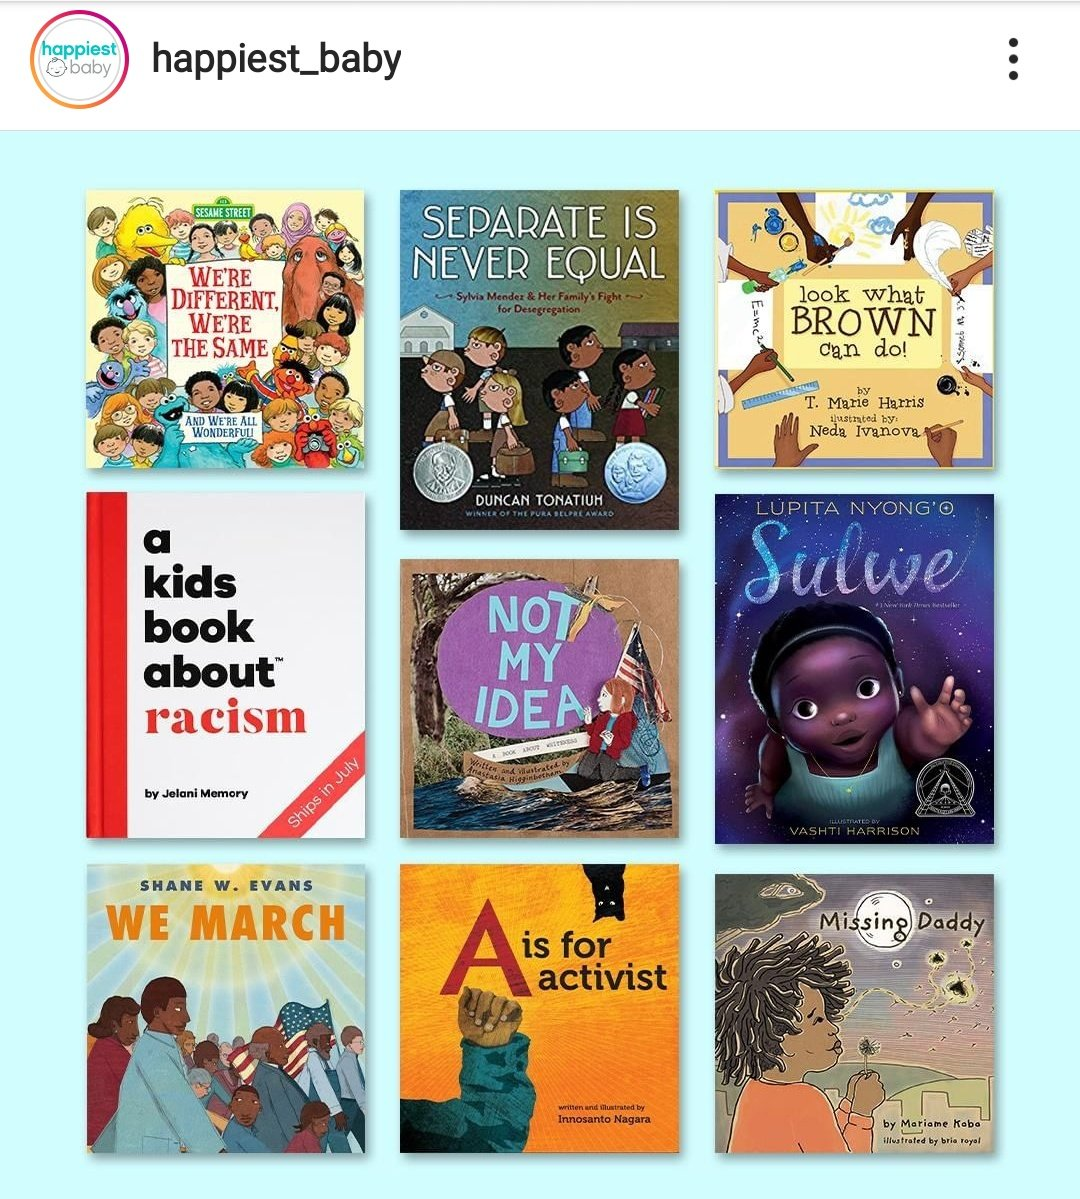 For all the parents in the mentions, saw this on Instagram, a great selection of books. Teach your kids from early to be anti racist xx pic.twitter.com/G1pt9Mg7y7